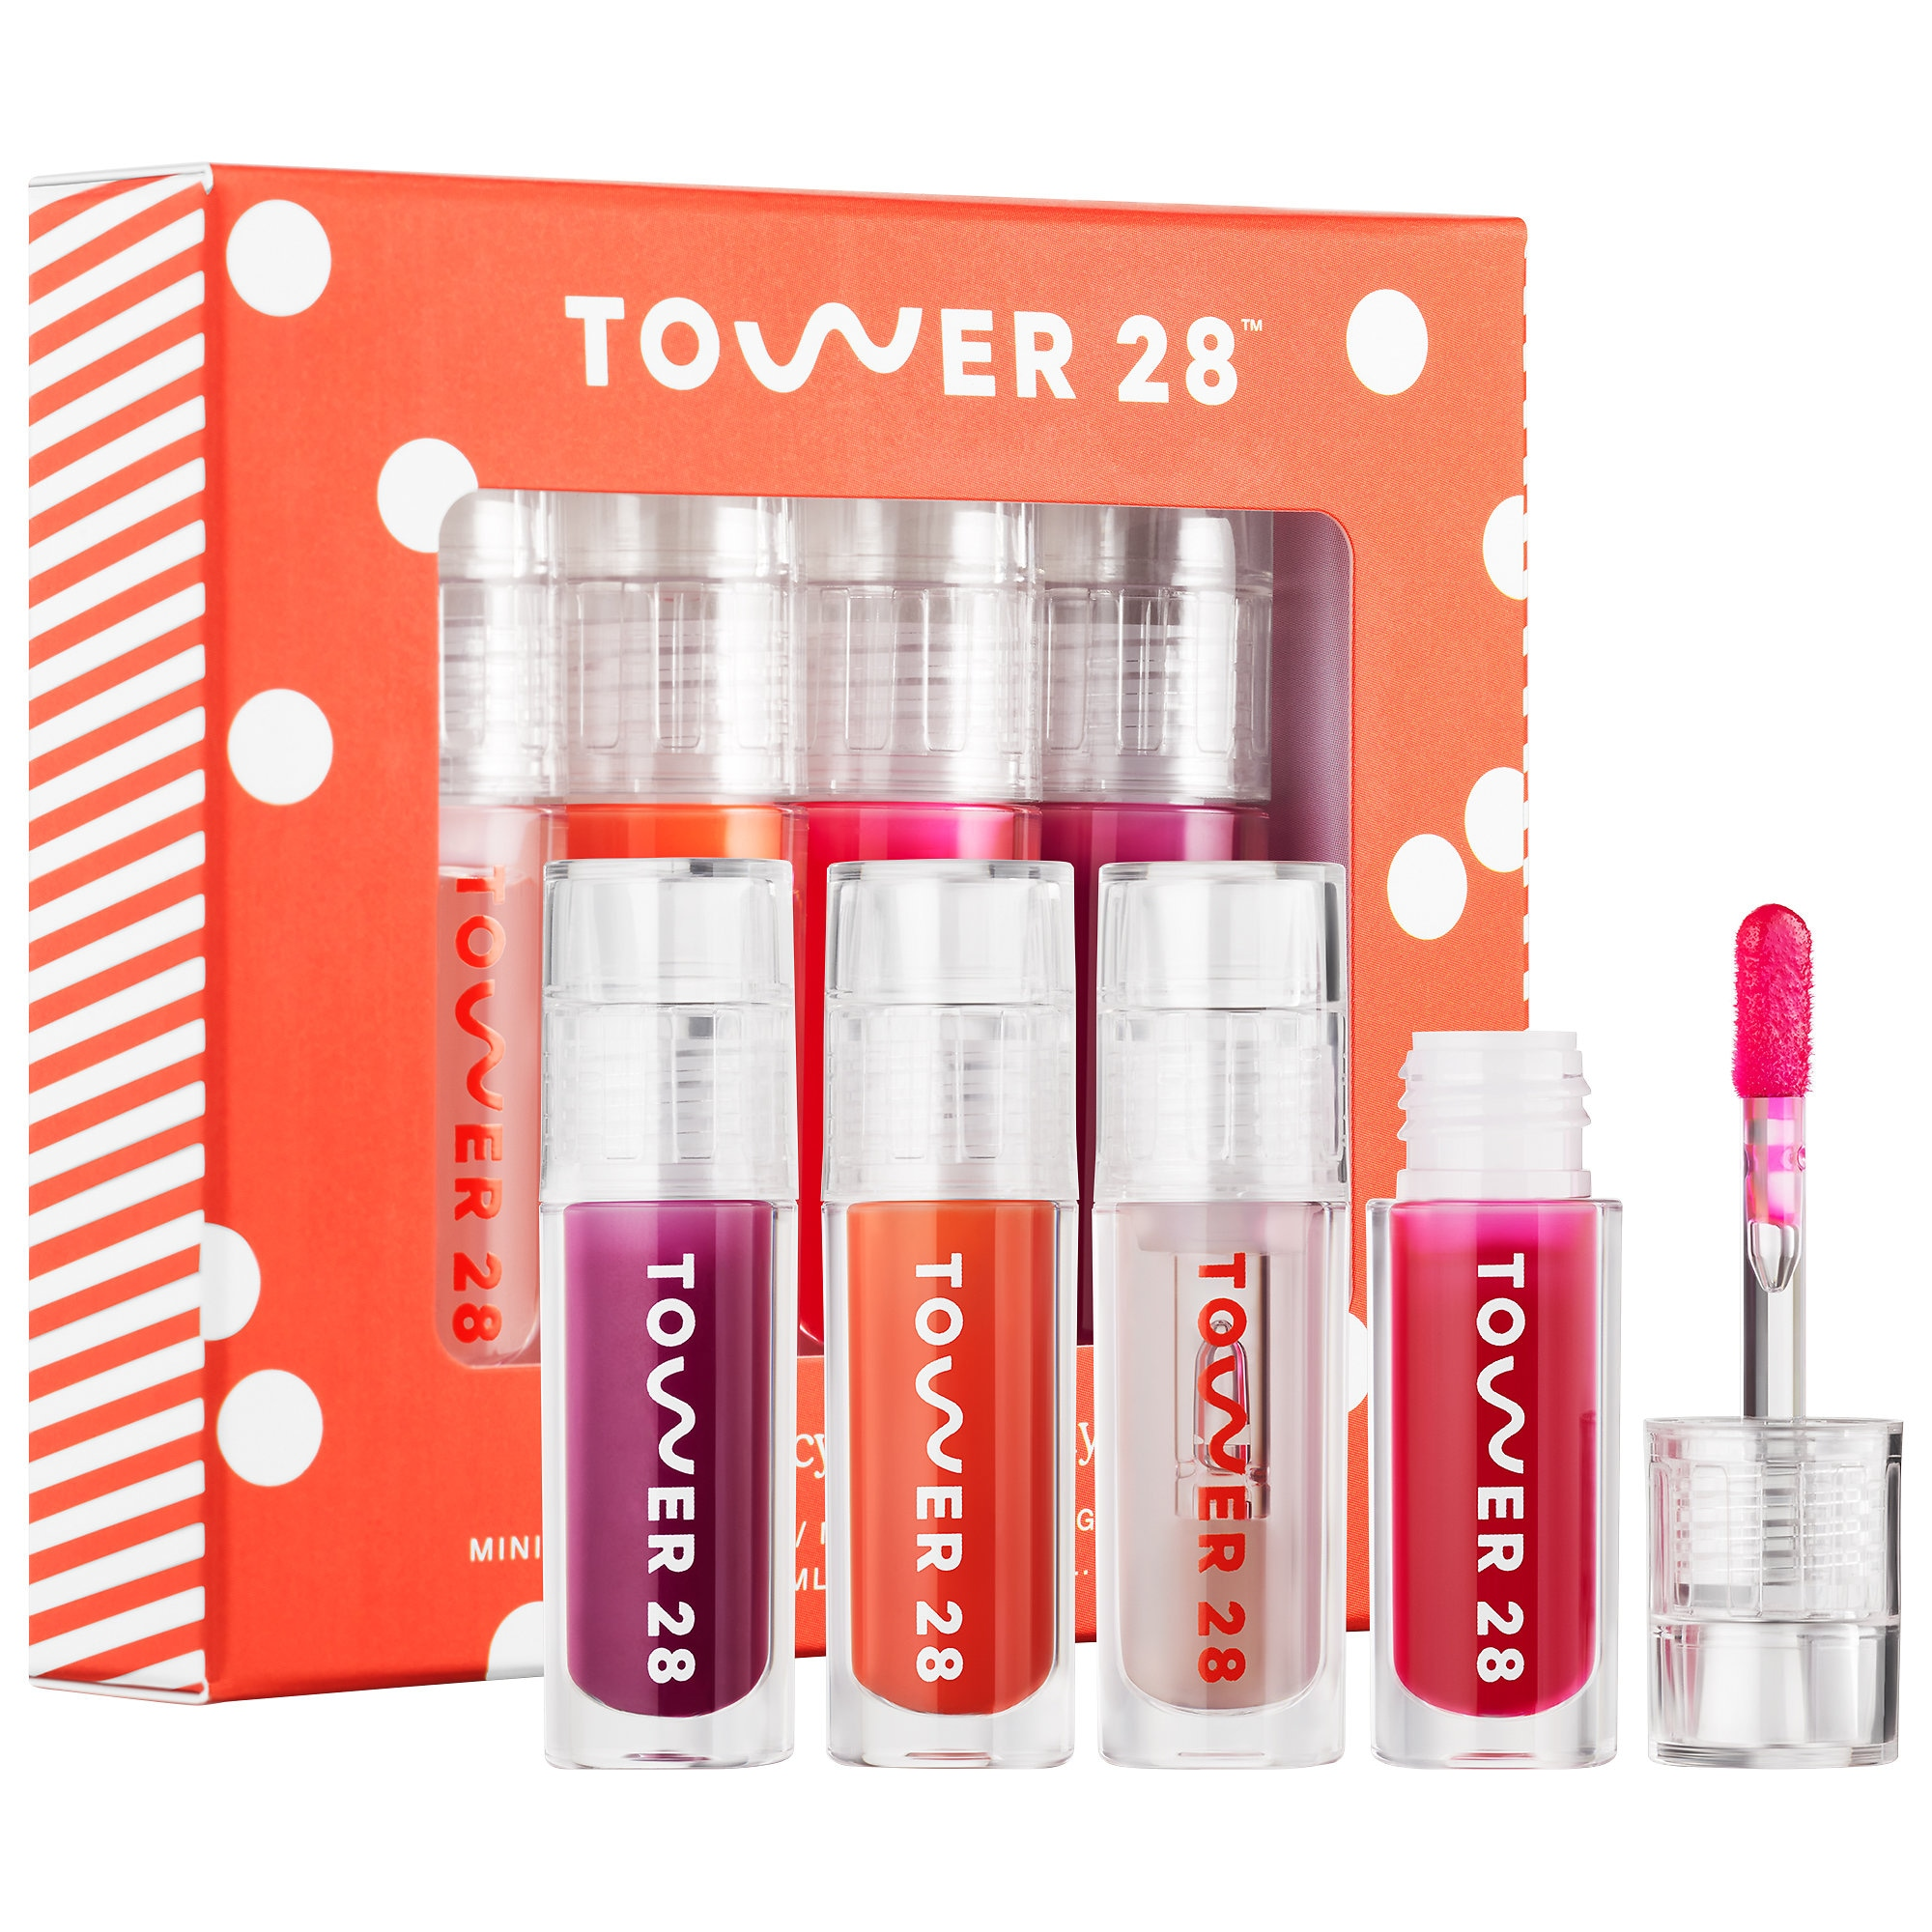 Tower28 Mini Juicy All The Way Lip Jelly Set